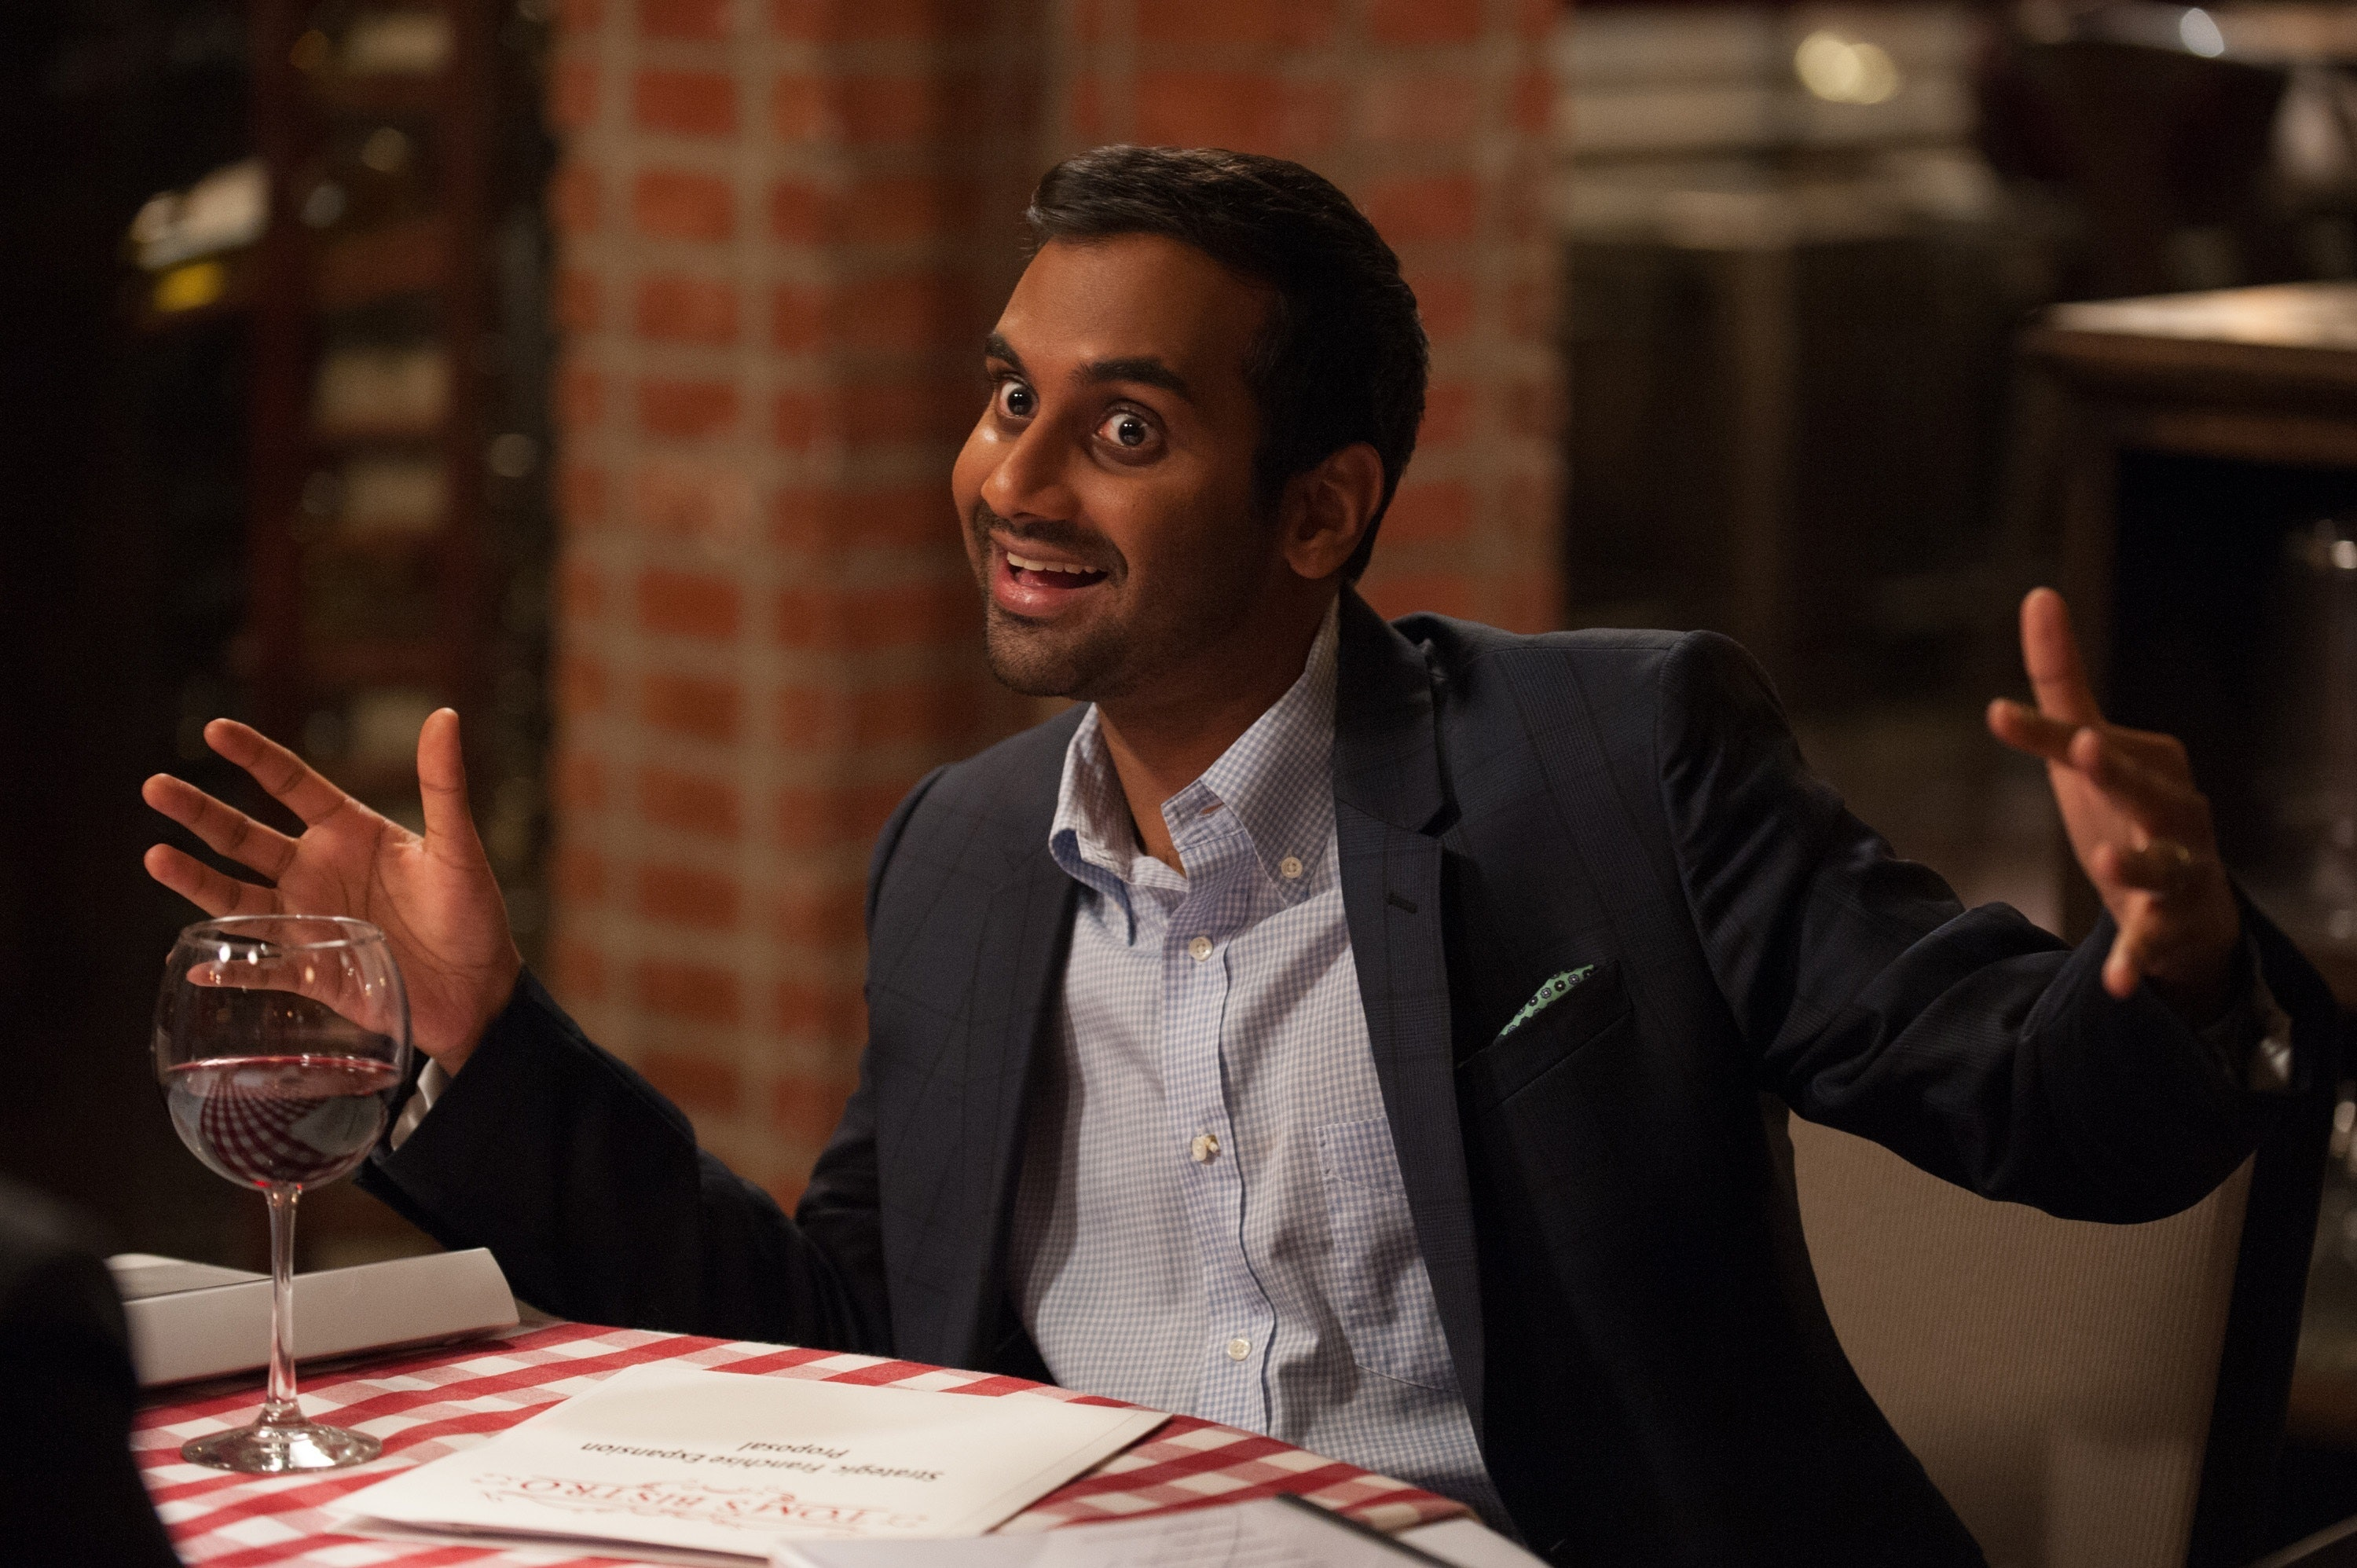 Master of None season 2 premiere announced in Netflix teaser